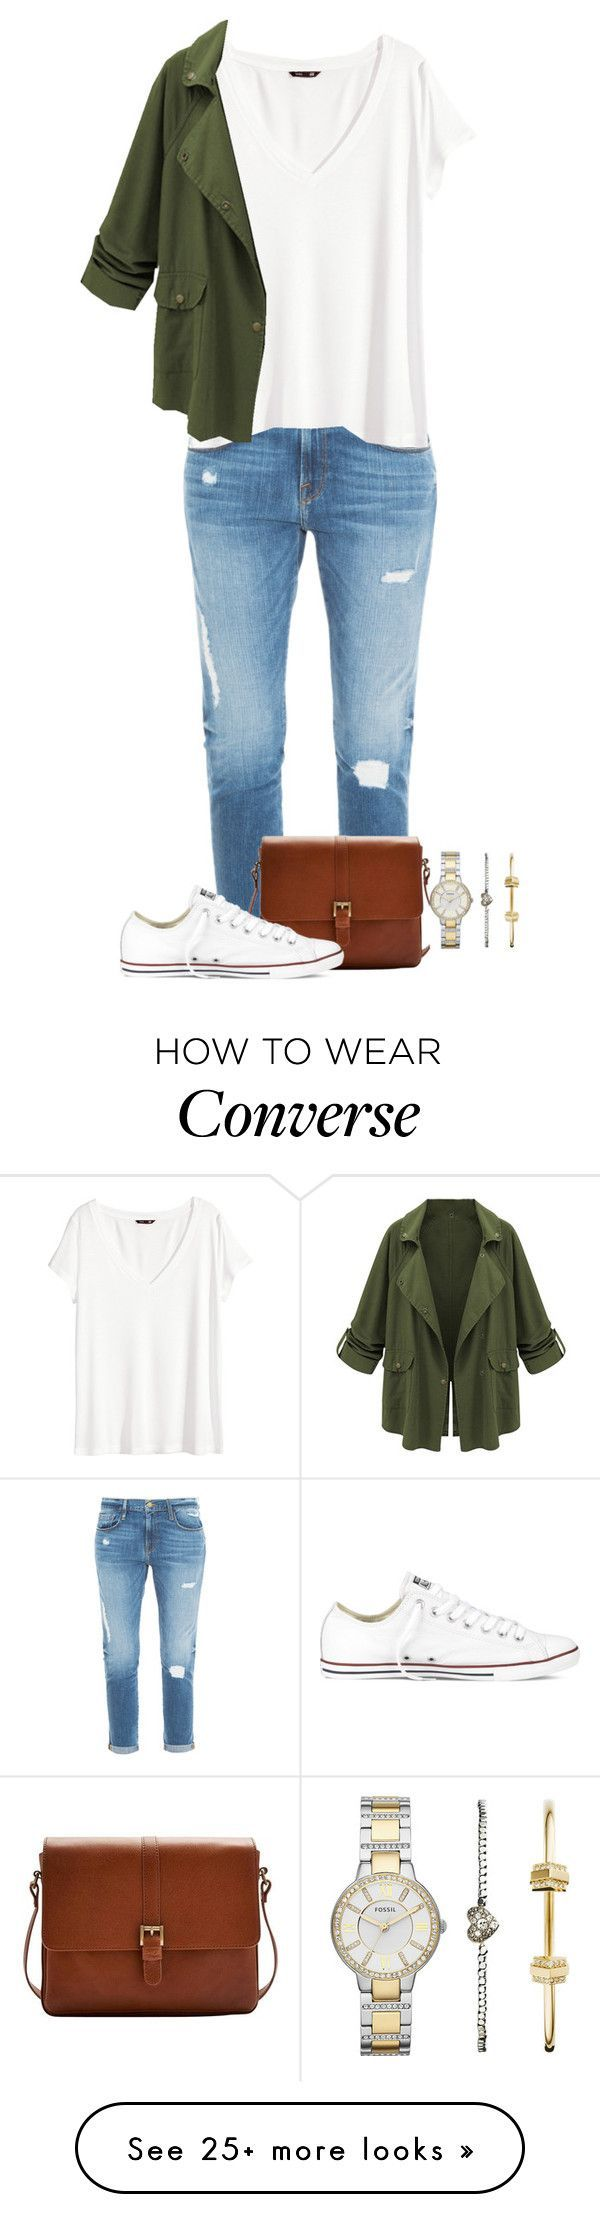 """""""untitled 50"""" by caro3302 on Polyvore featuring Frame Denim, Joules, Converse, H&M and FOSSIL"""